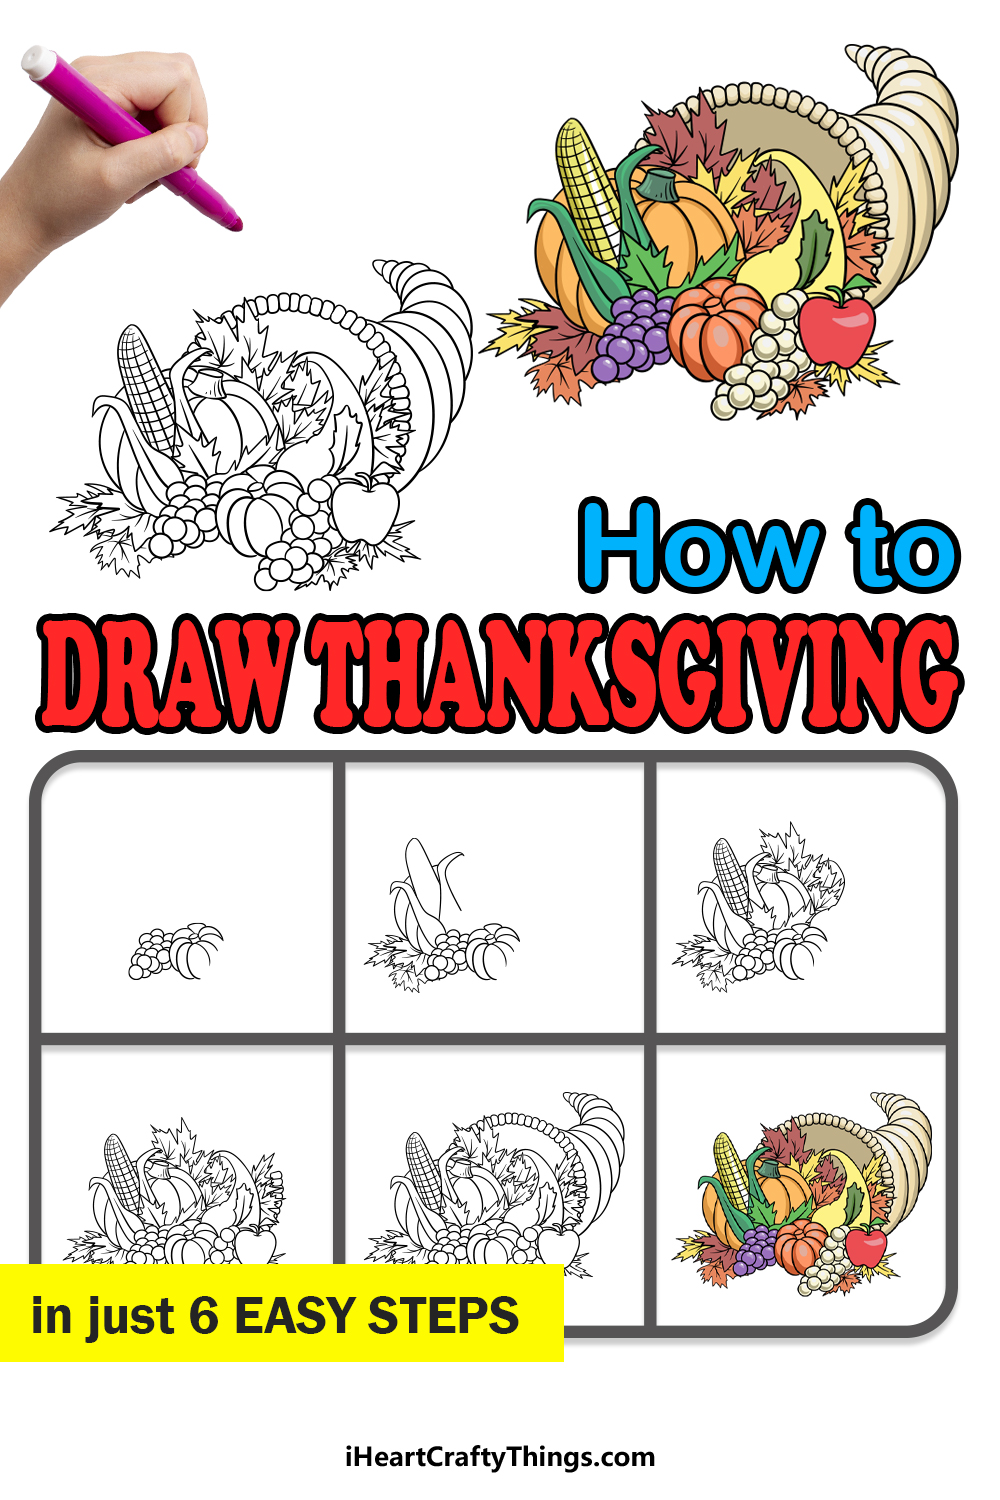 how to draw thanksgiving in 6 easy steps